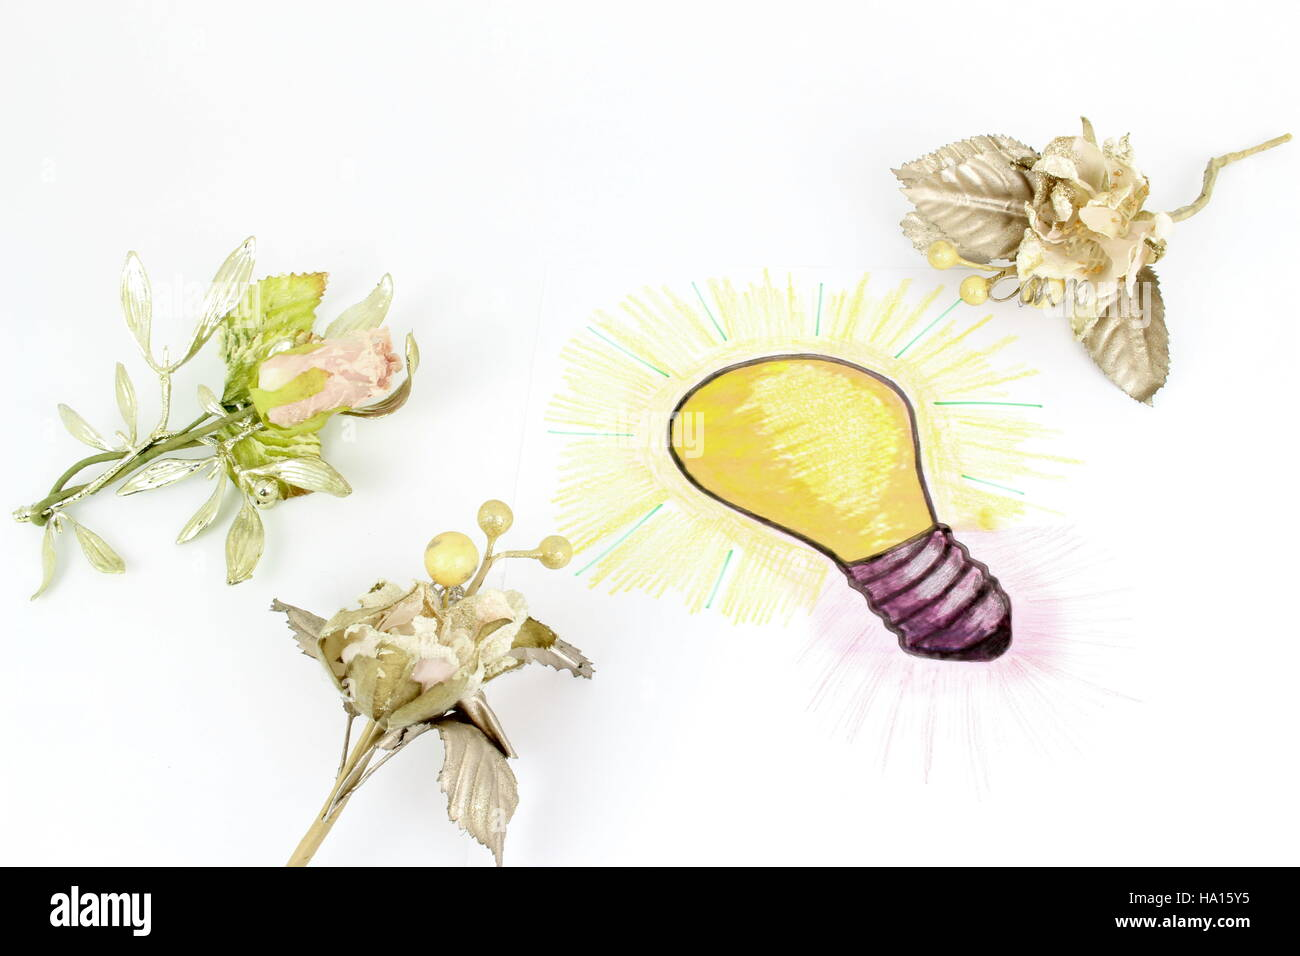 A stylised illustration of a light bulb that has been sketched on a sheet of paper. Idea of a gift with floral decorations. - Stock Image